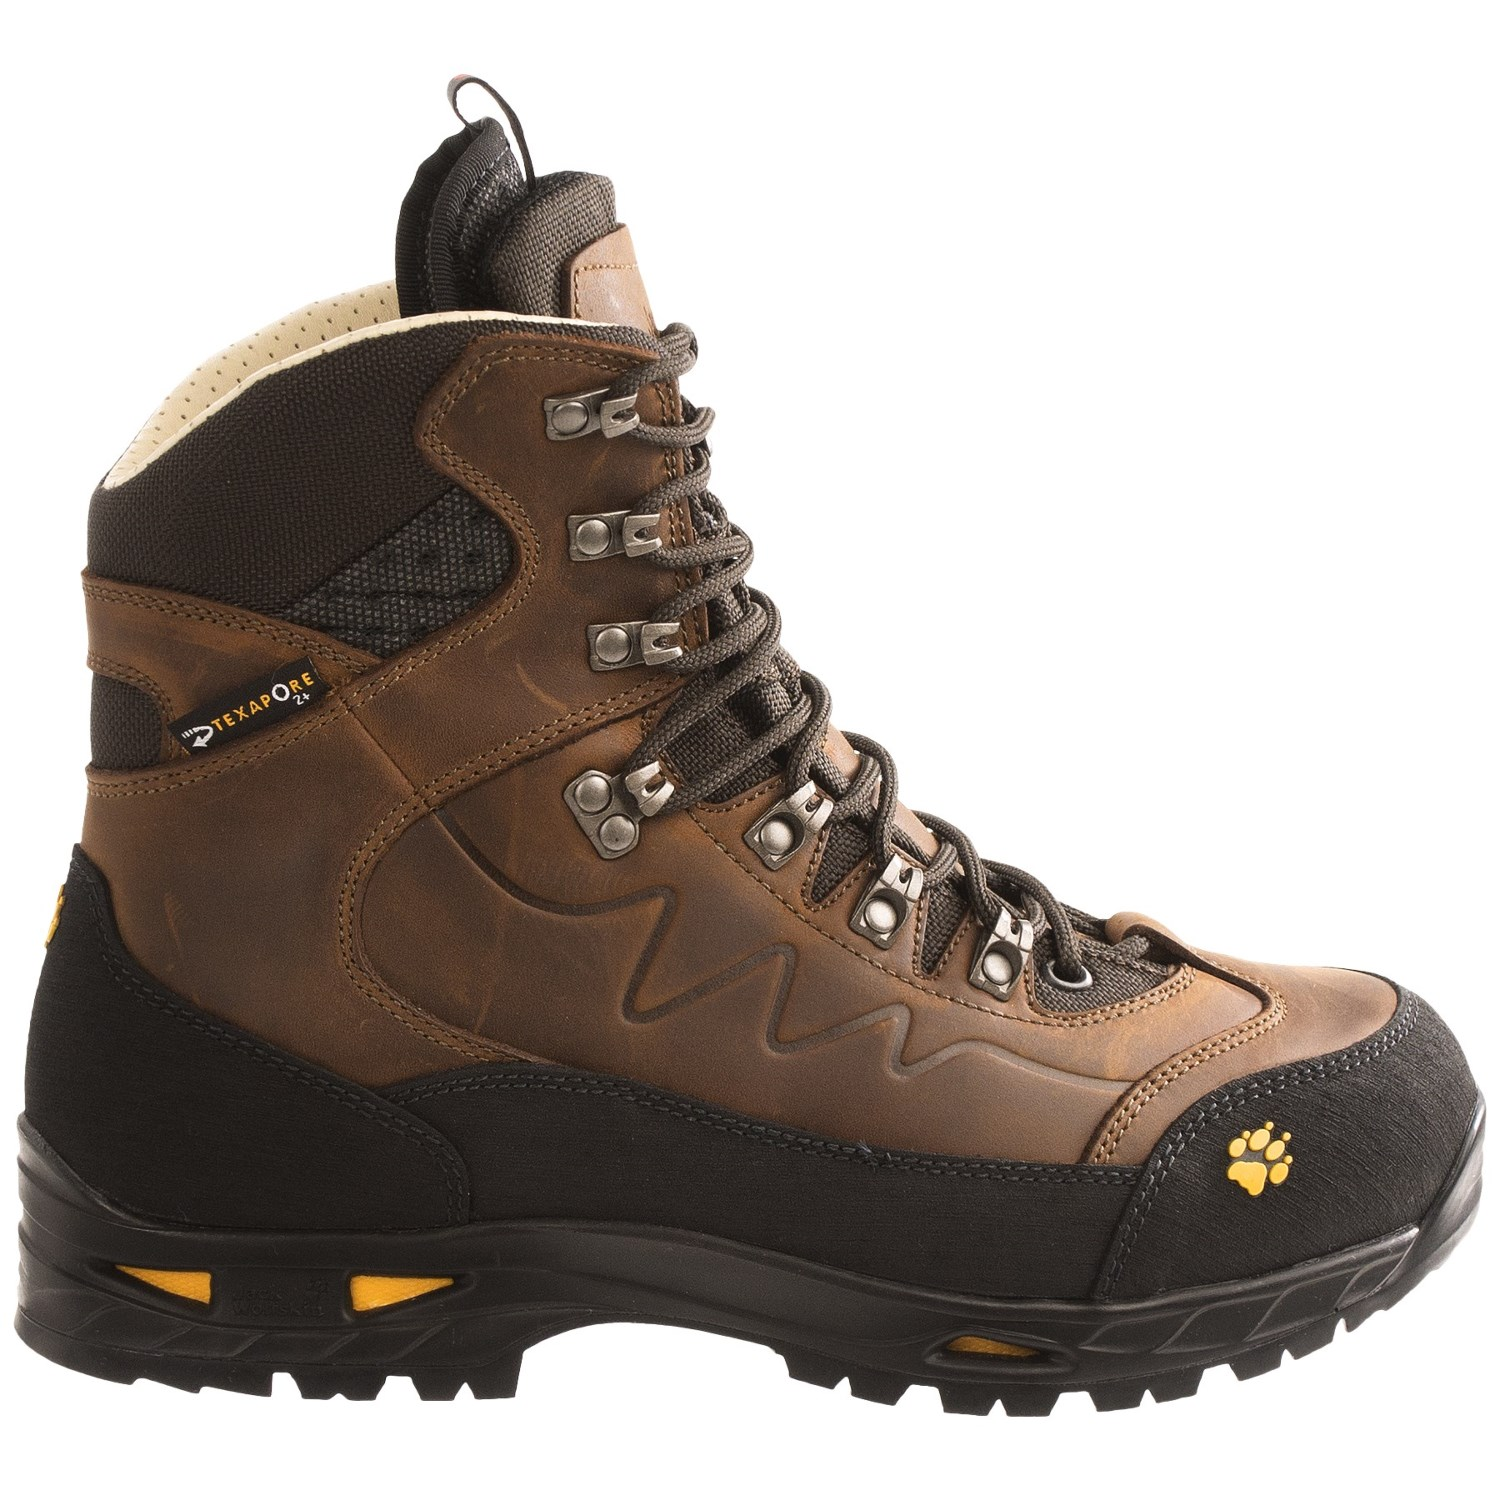 jack wolfskin deviator texapore hiking boots for men 7546y save 33. Black Bedroom Furniture Sets. Home Design Ideas